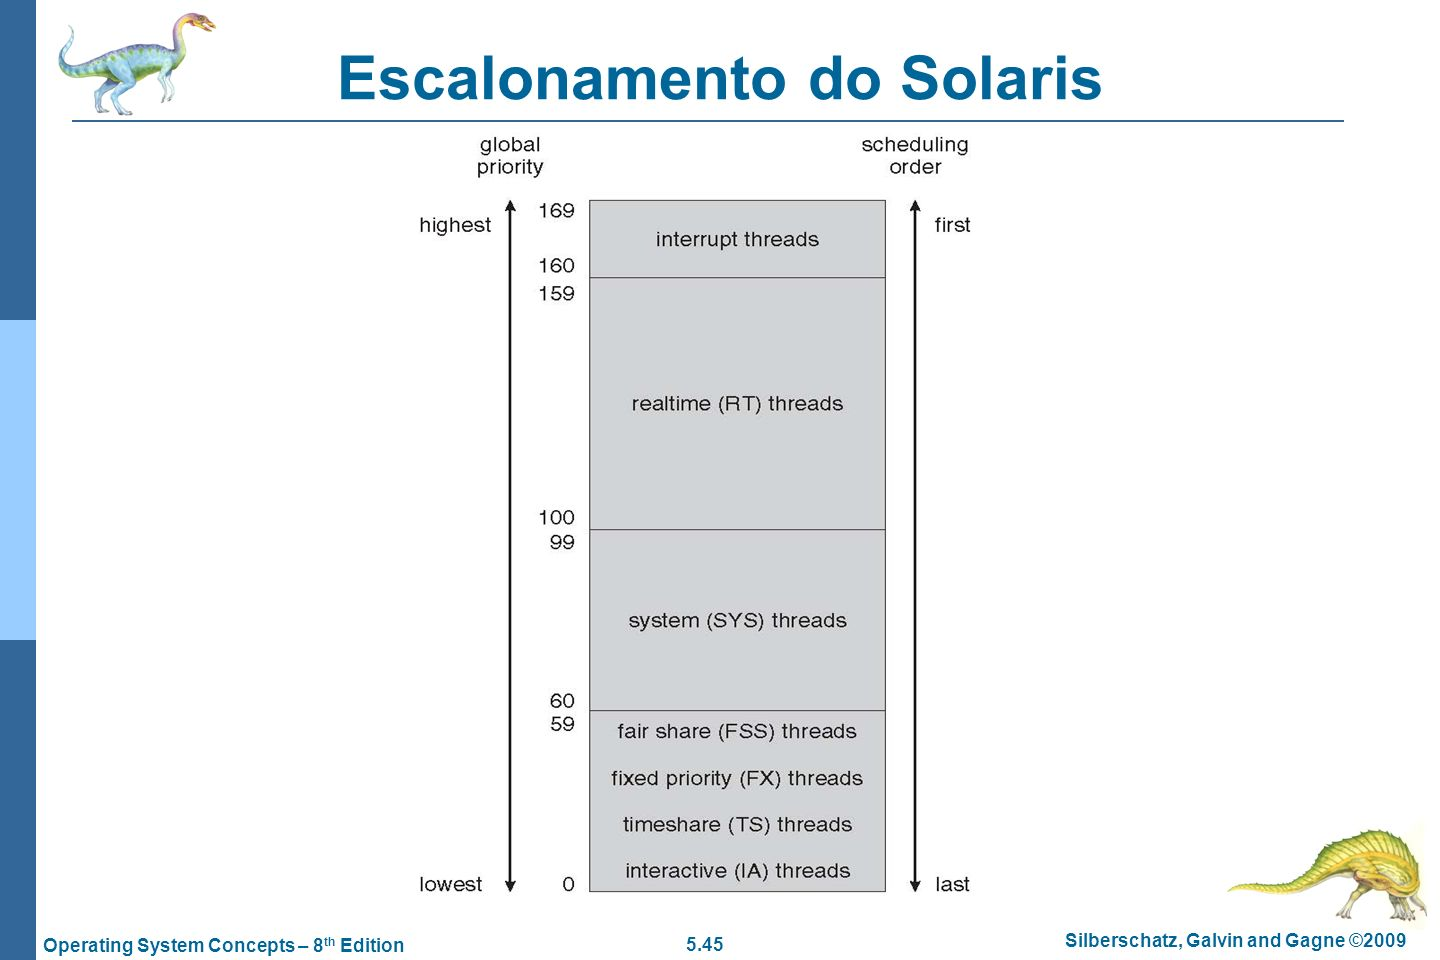 Escalonamento do Solaris